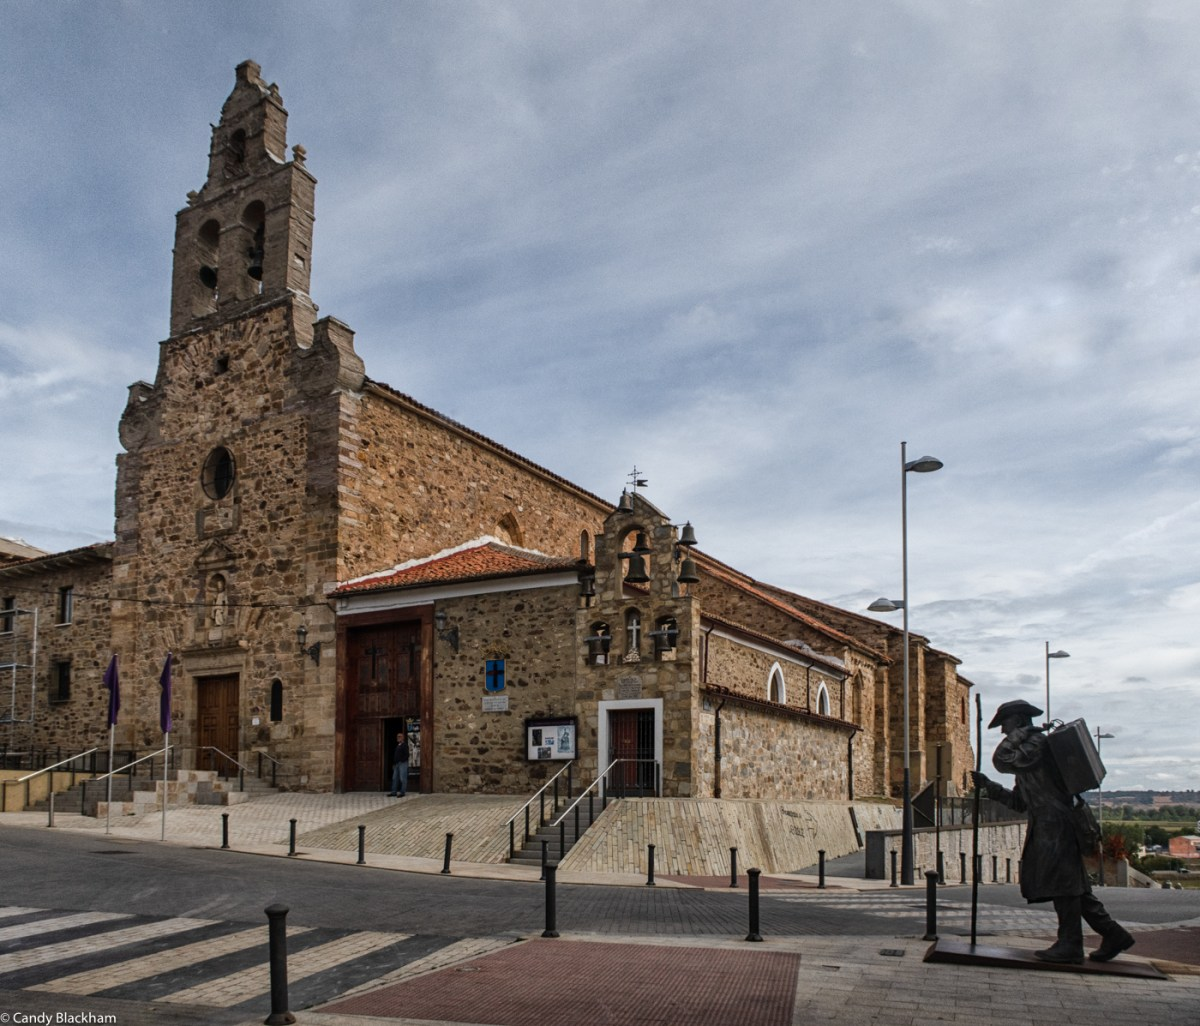 The Church of San Francisco, and the small Chapel of Santa Vera Cruz in Astorga